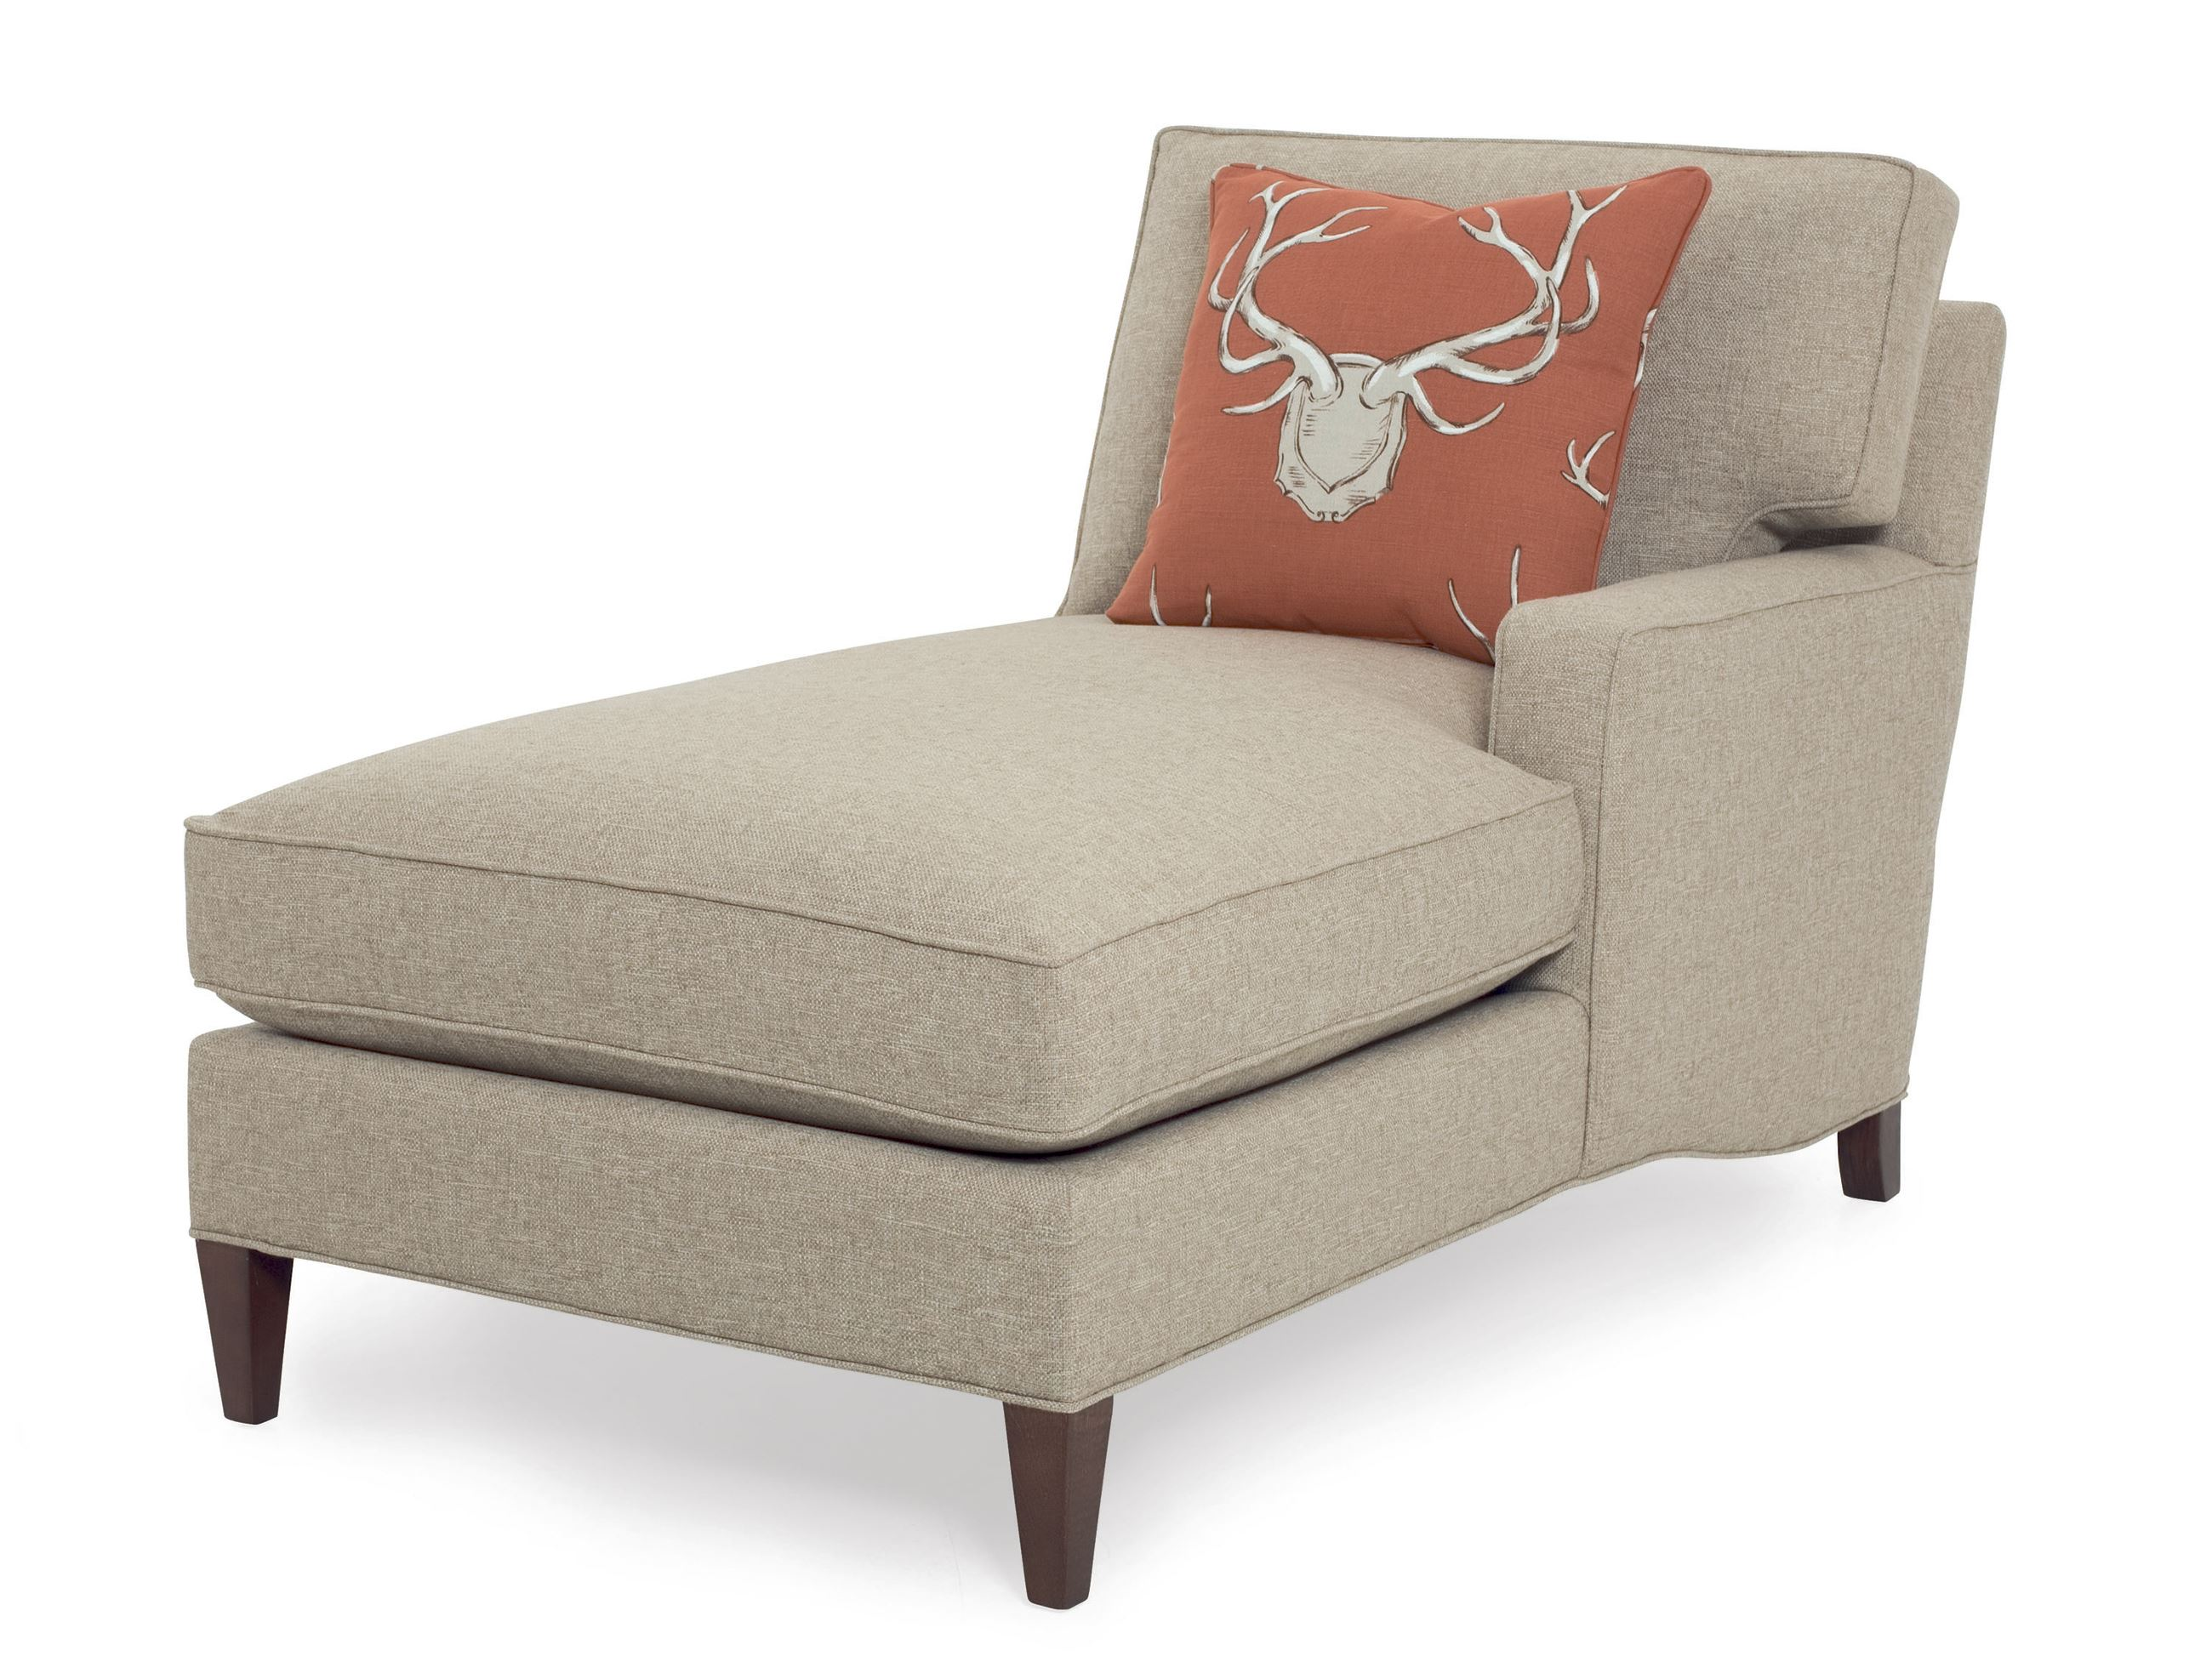 Chaising Comfort The Fainting Couch Is Coming Back In